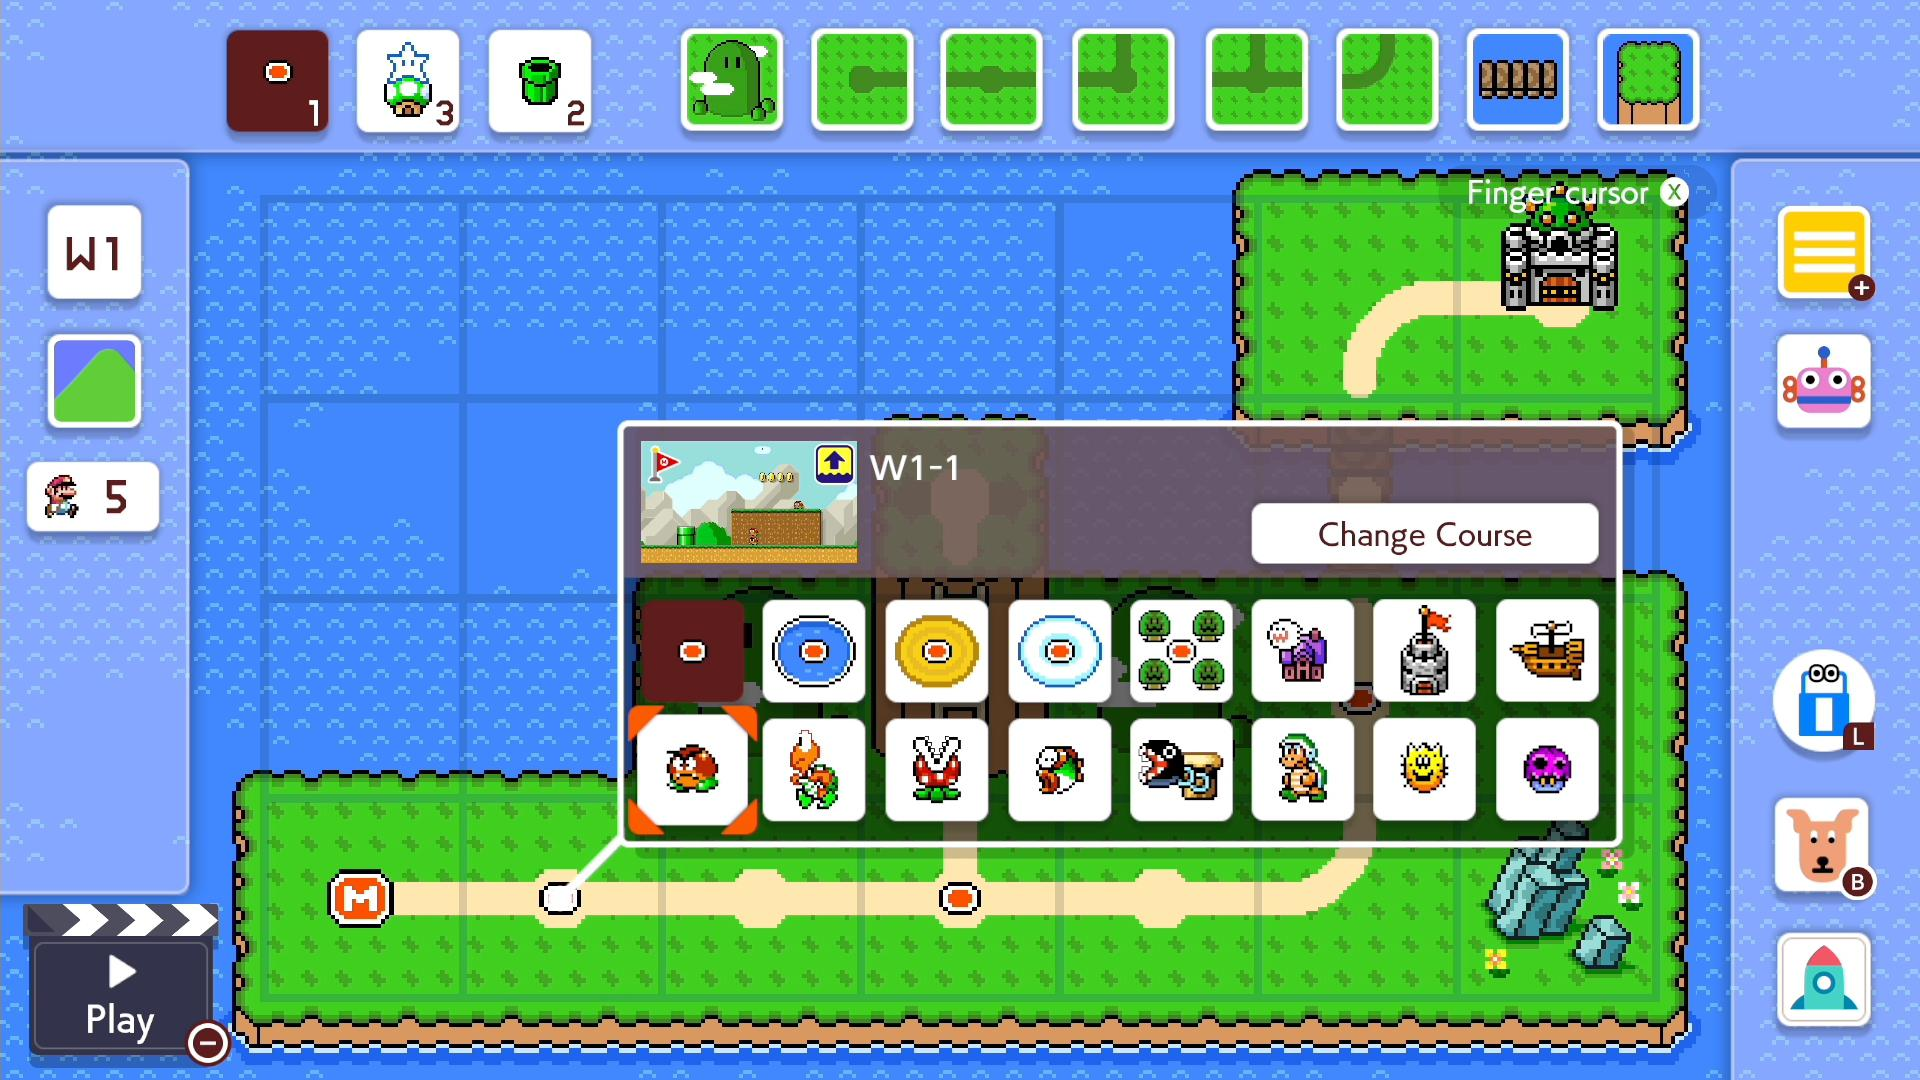 Nintendo News Free Final Update To Super Mario Maker 2 Adds World Building Mode And New Course Parts